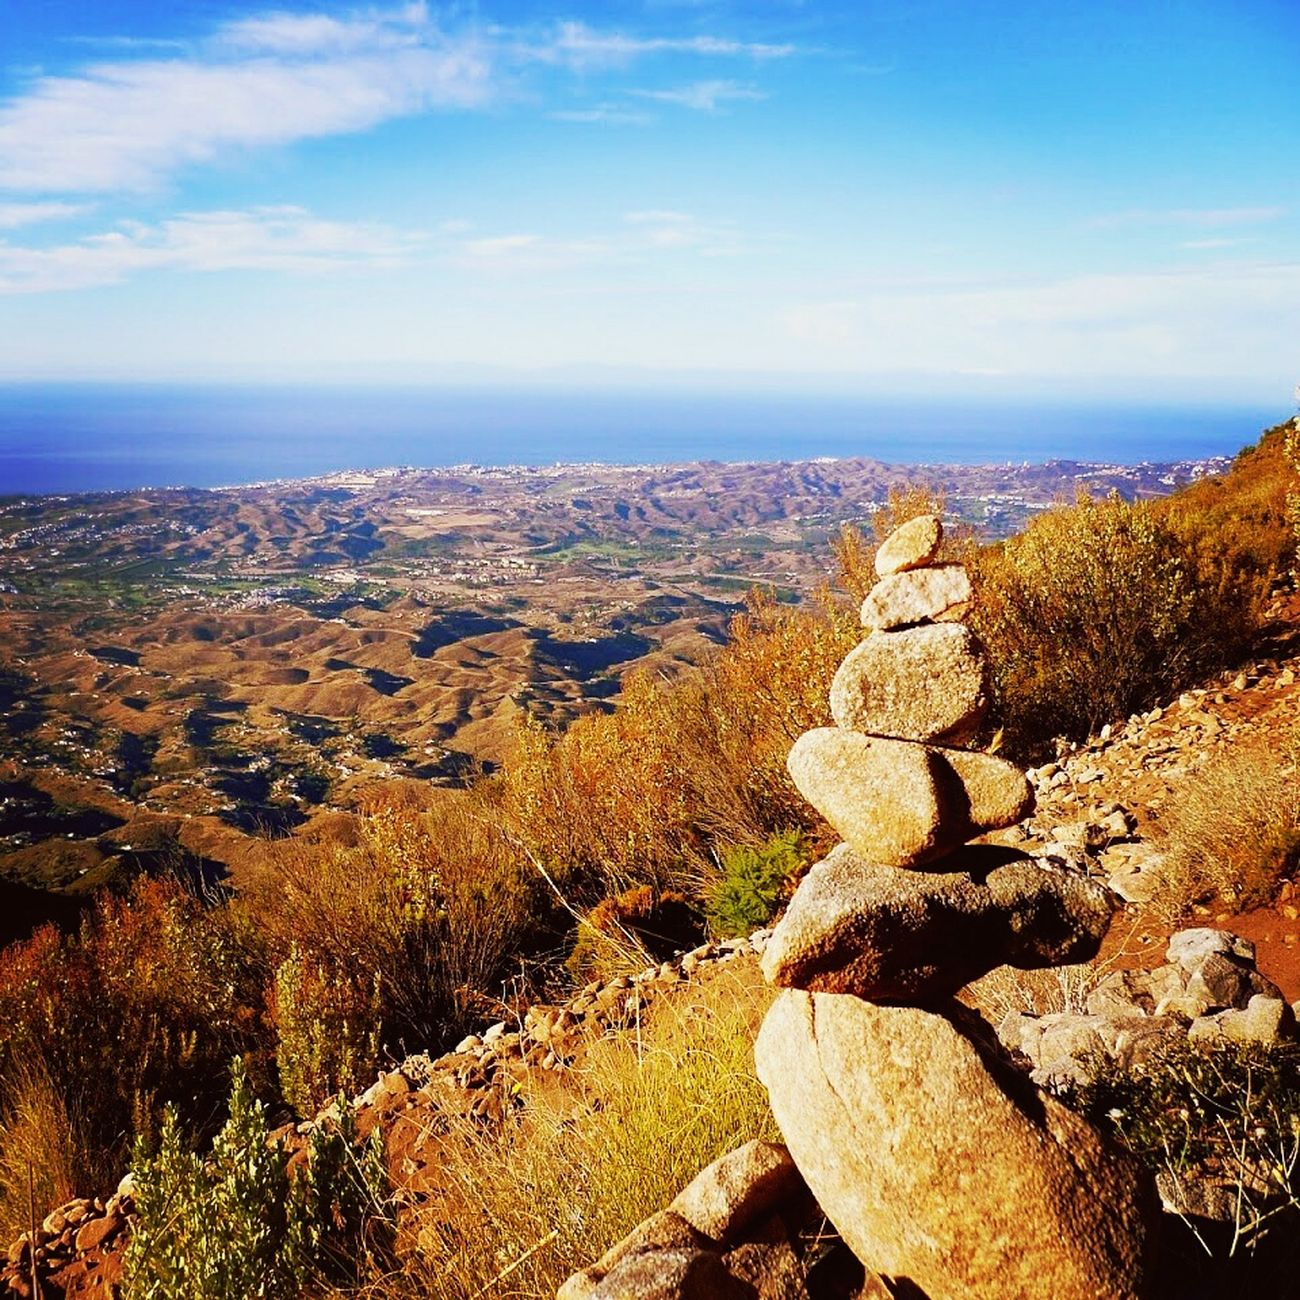 Halfway up Pico Mijas in southern Spain. Travel SPAIN Pueblo Mijas Mountain View